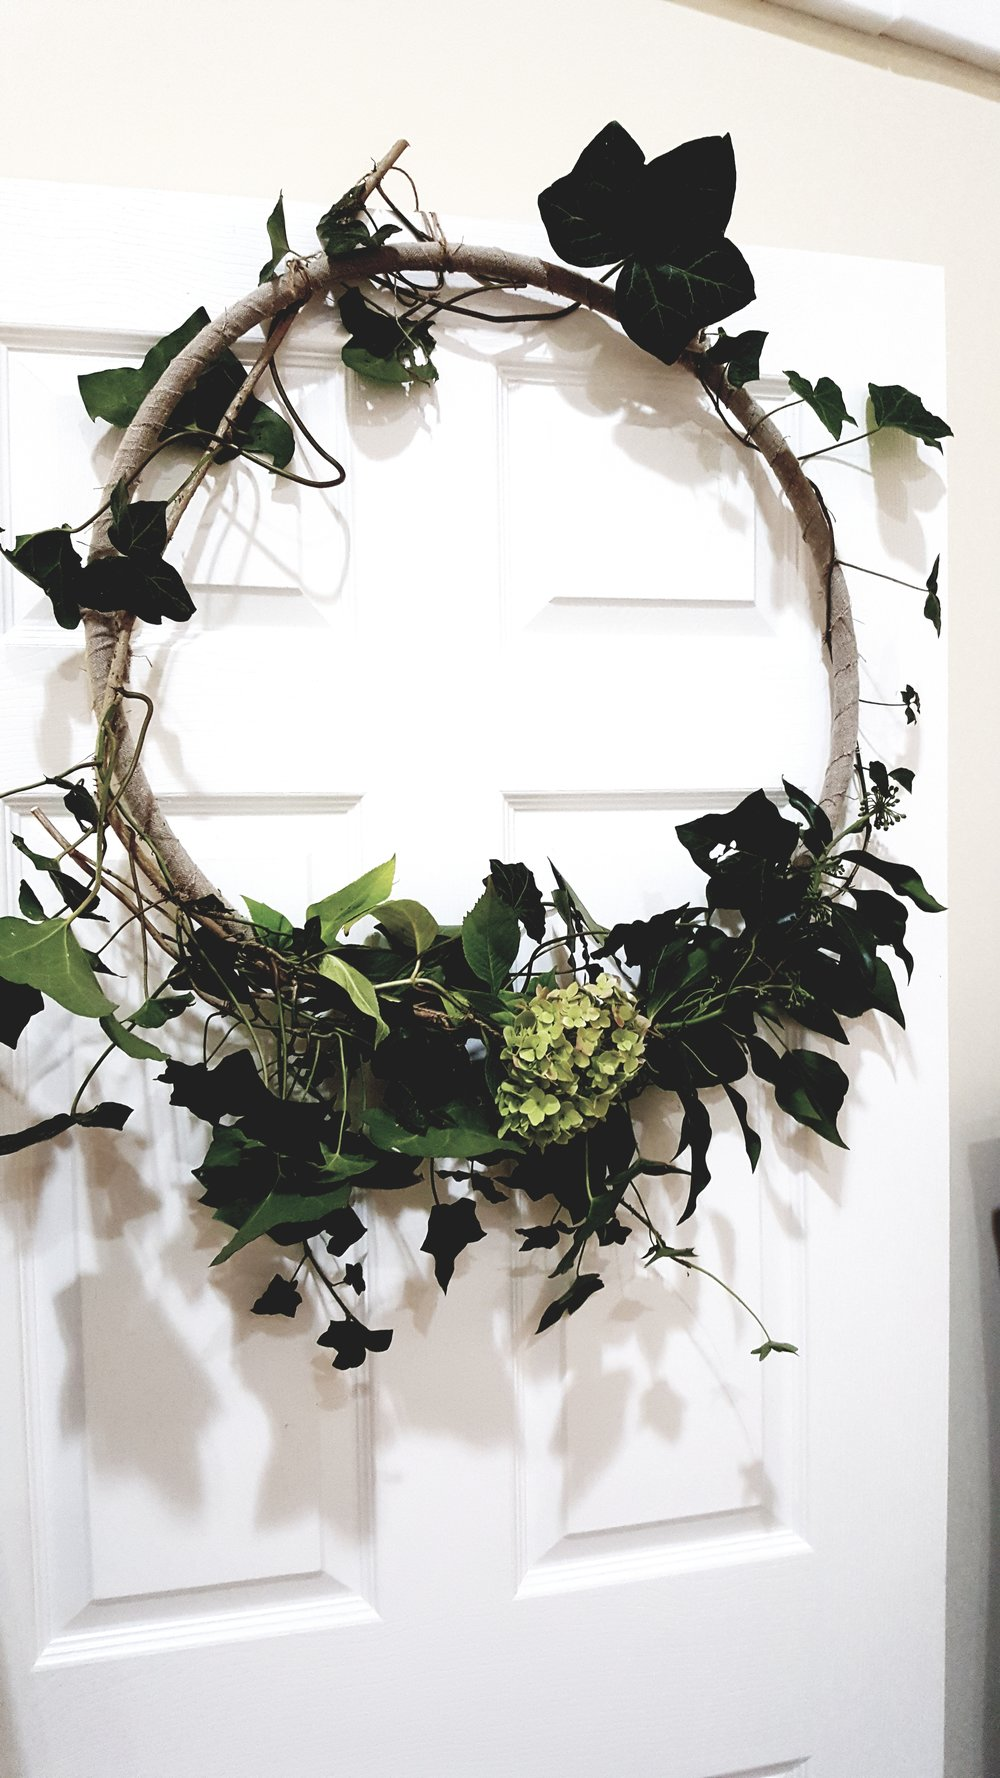 The humble hula hoop transformed by Beth into a gorgeous modern rustic wall hanging